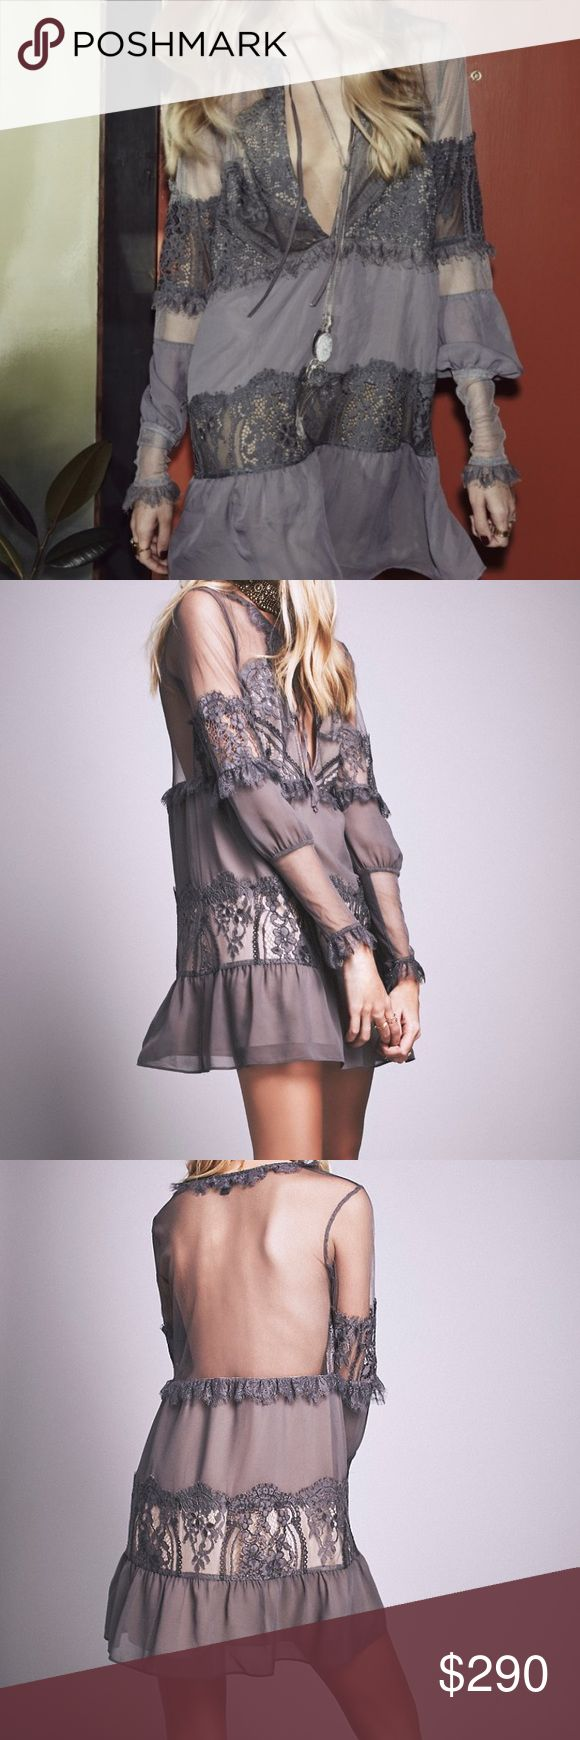 🆕 FL&L Alexa mini dress in Slate Grey size L NWT For Love & Lemons 'Alexa' mini dress in Slate Grey. Size Large. A size Large is equal to a 6/8 according to the For Love & Lemons website size guide. This dress is gorgeous with lace detailing, keyhole front that can be tied or left untied, and is partially lined. Please view all photos carefully and ask any questions you may have prior to purchasing. Retail $290. ✨No Trades✨ ✅Offers Considered Via the Offer Button✅ For Love and Lemons…